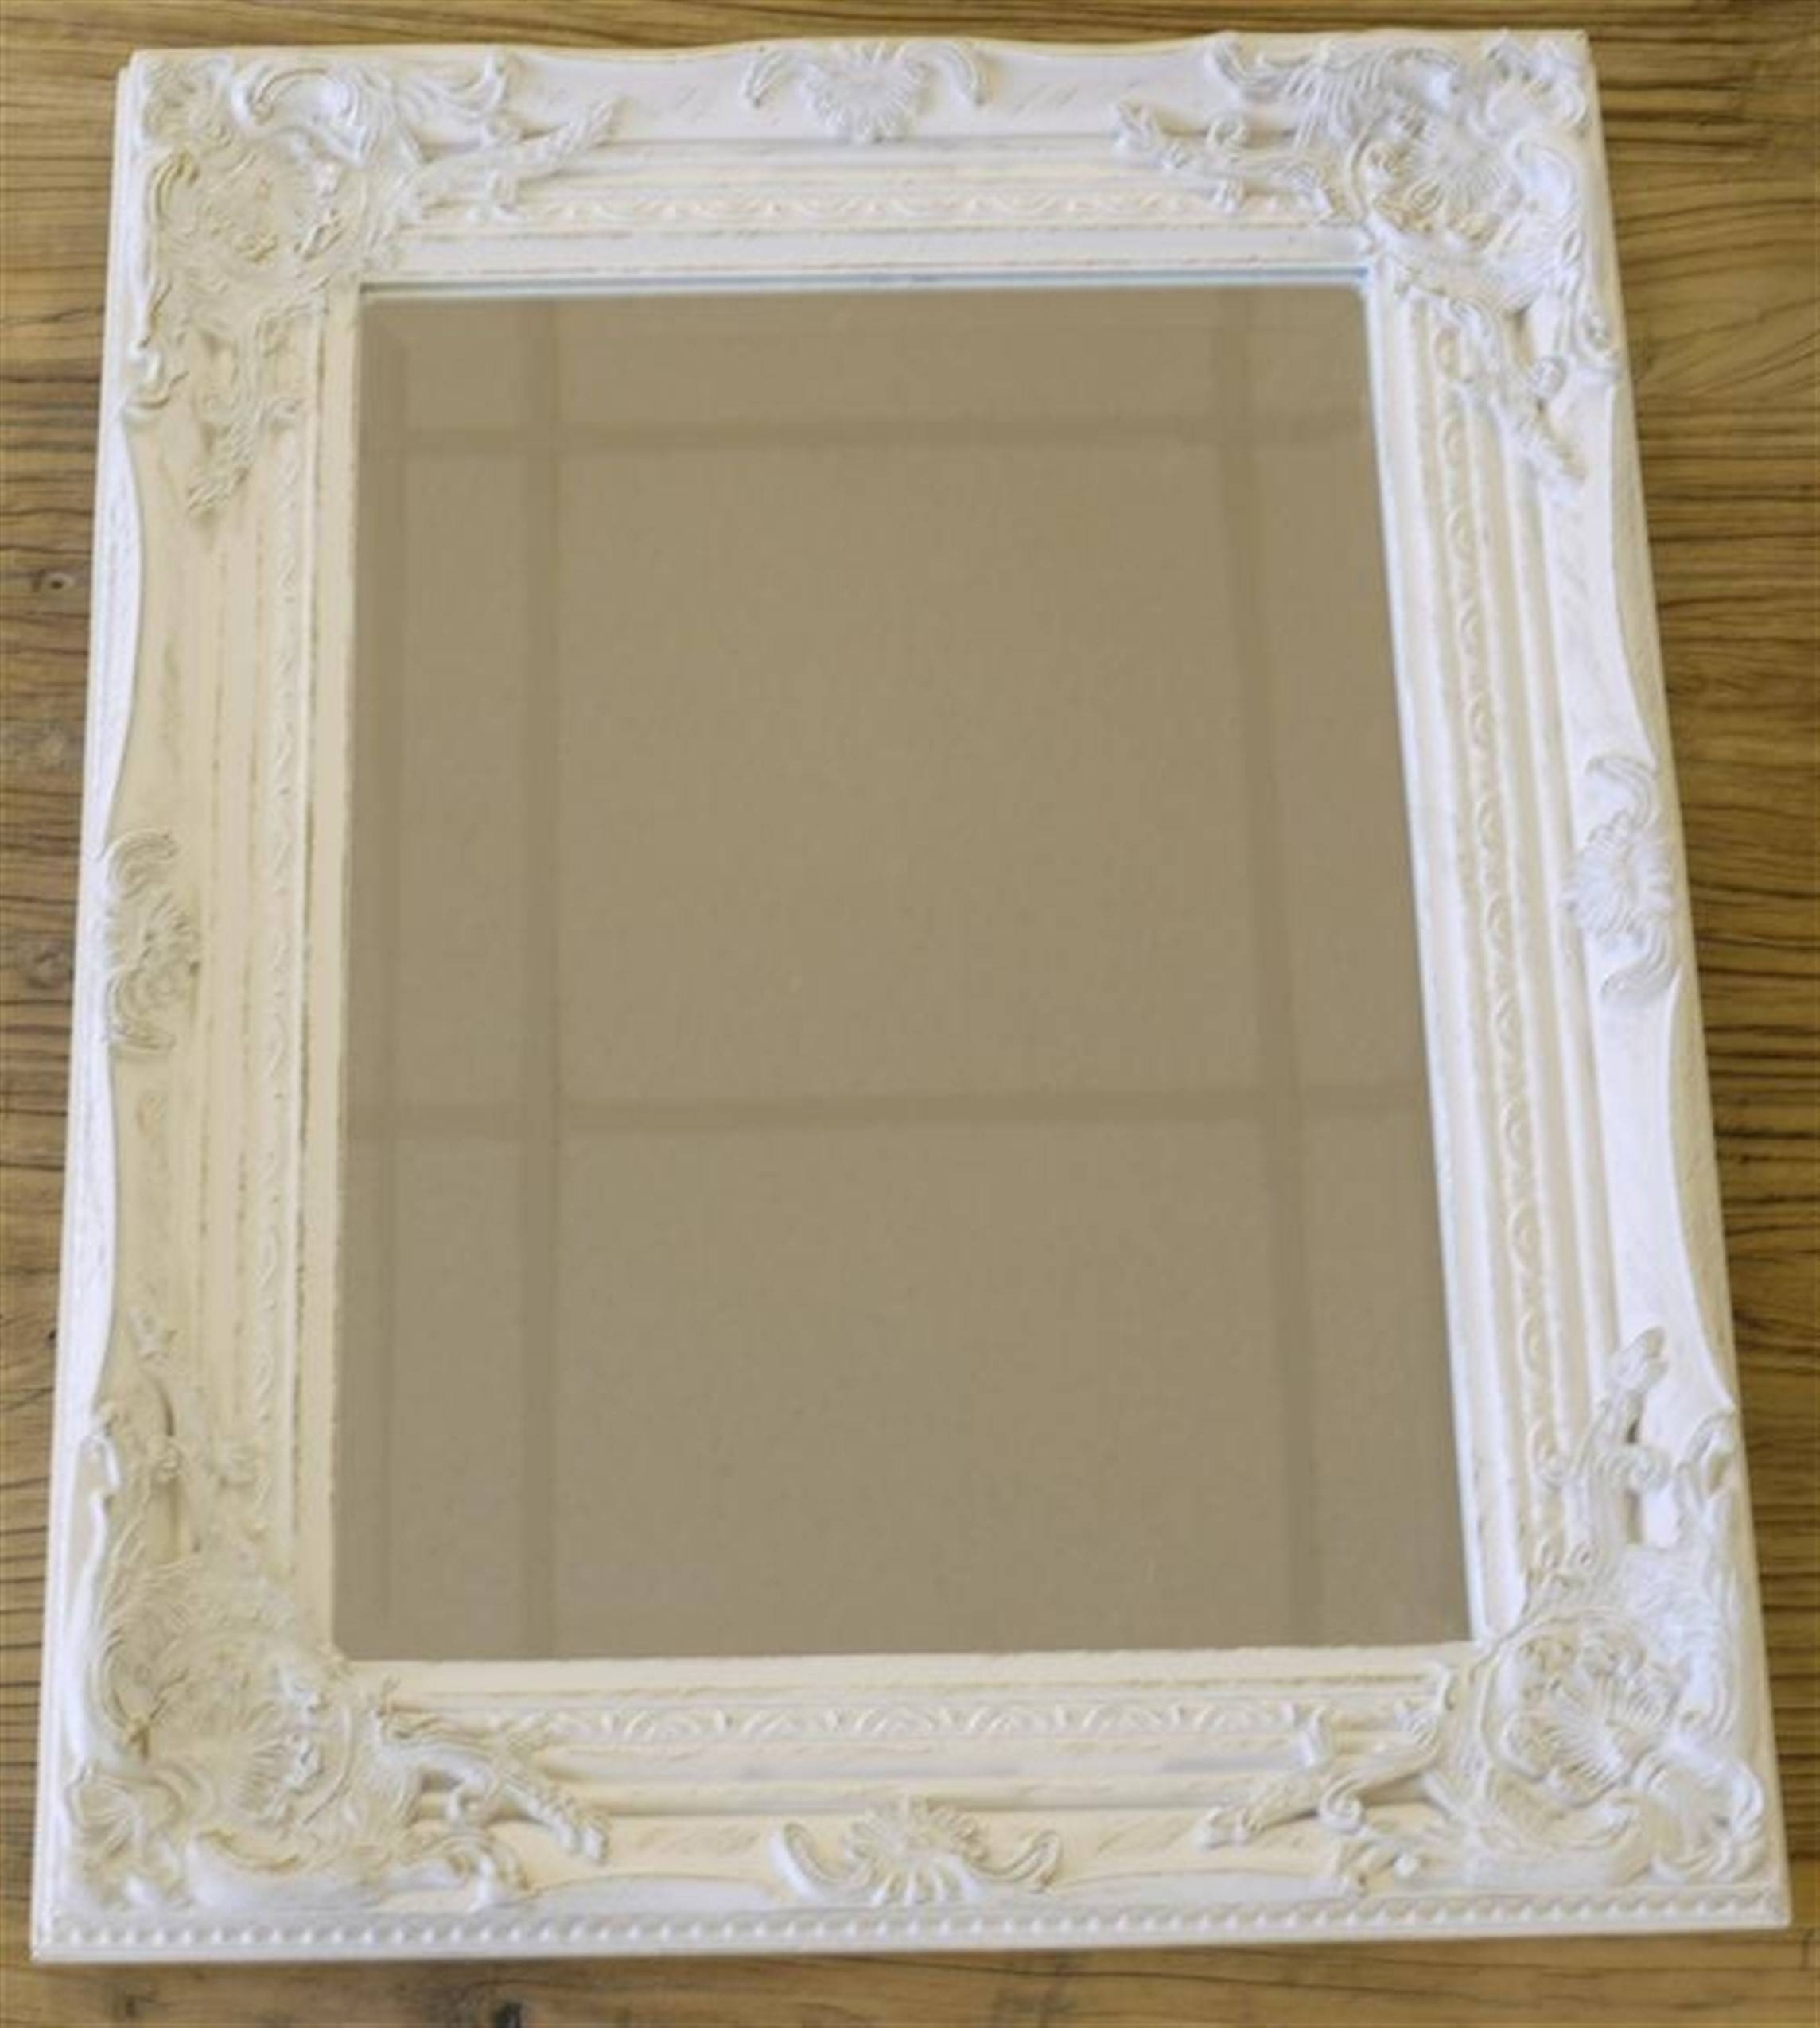 Silver Gilded Or White Shabby Chic Bathroom Hall Wall Small Mirror inside Distressed Silver Mirrors (Image 21 of 25)